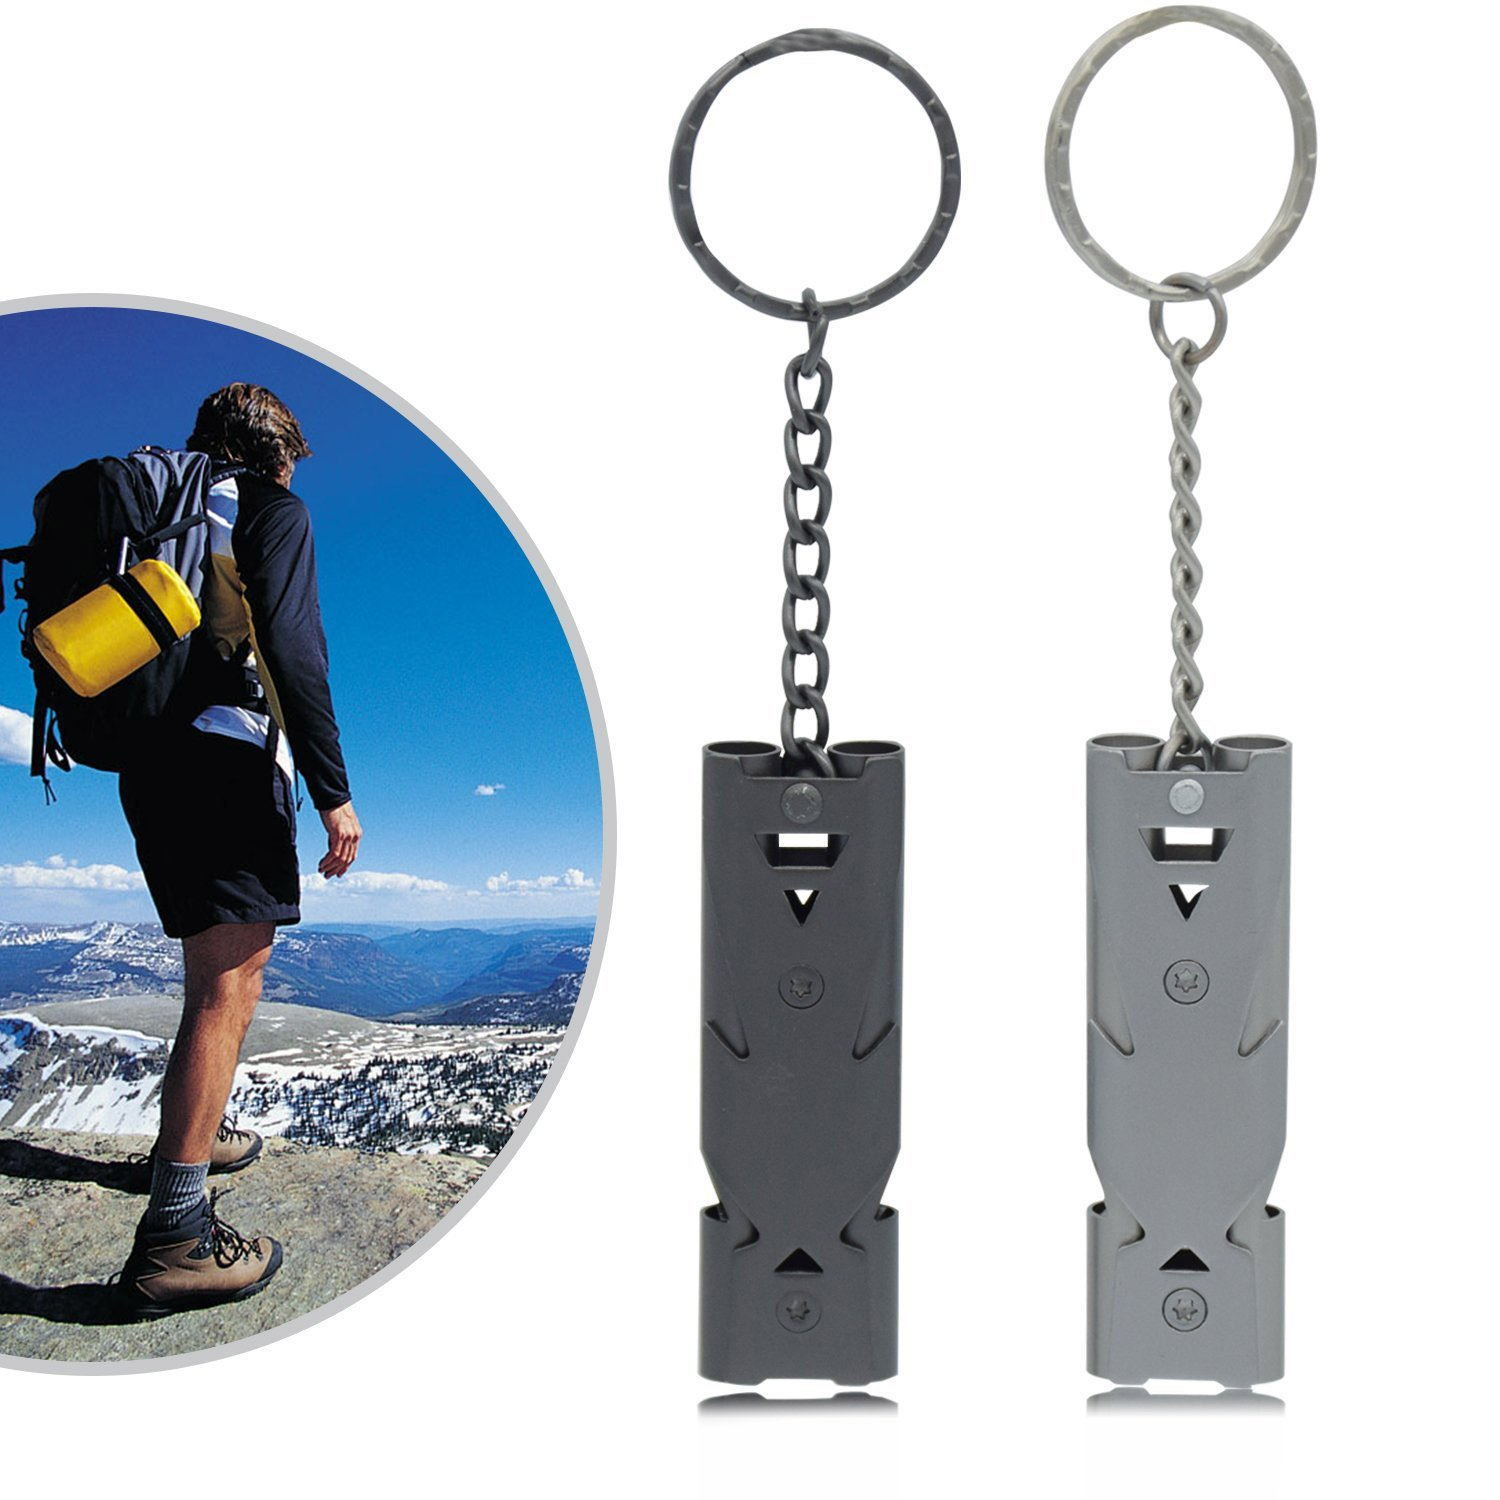 Sunerly Stainless Steel 2 Pack Emergency Whistle Double Tubes High Decibel Outdoor Survival Signal for Safety Life Saving Key Chain for Camping//Hiking